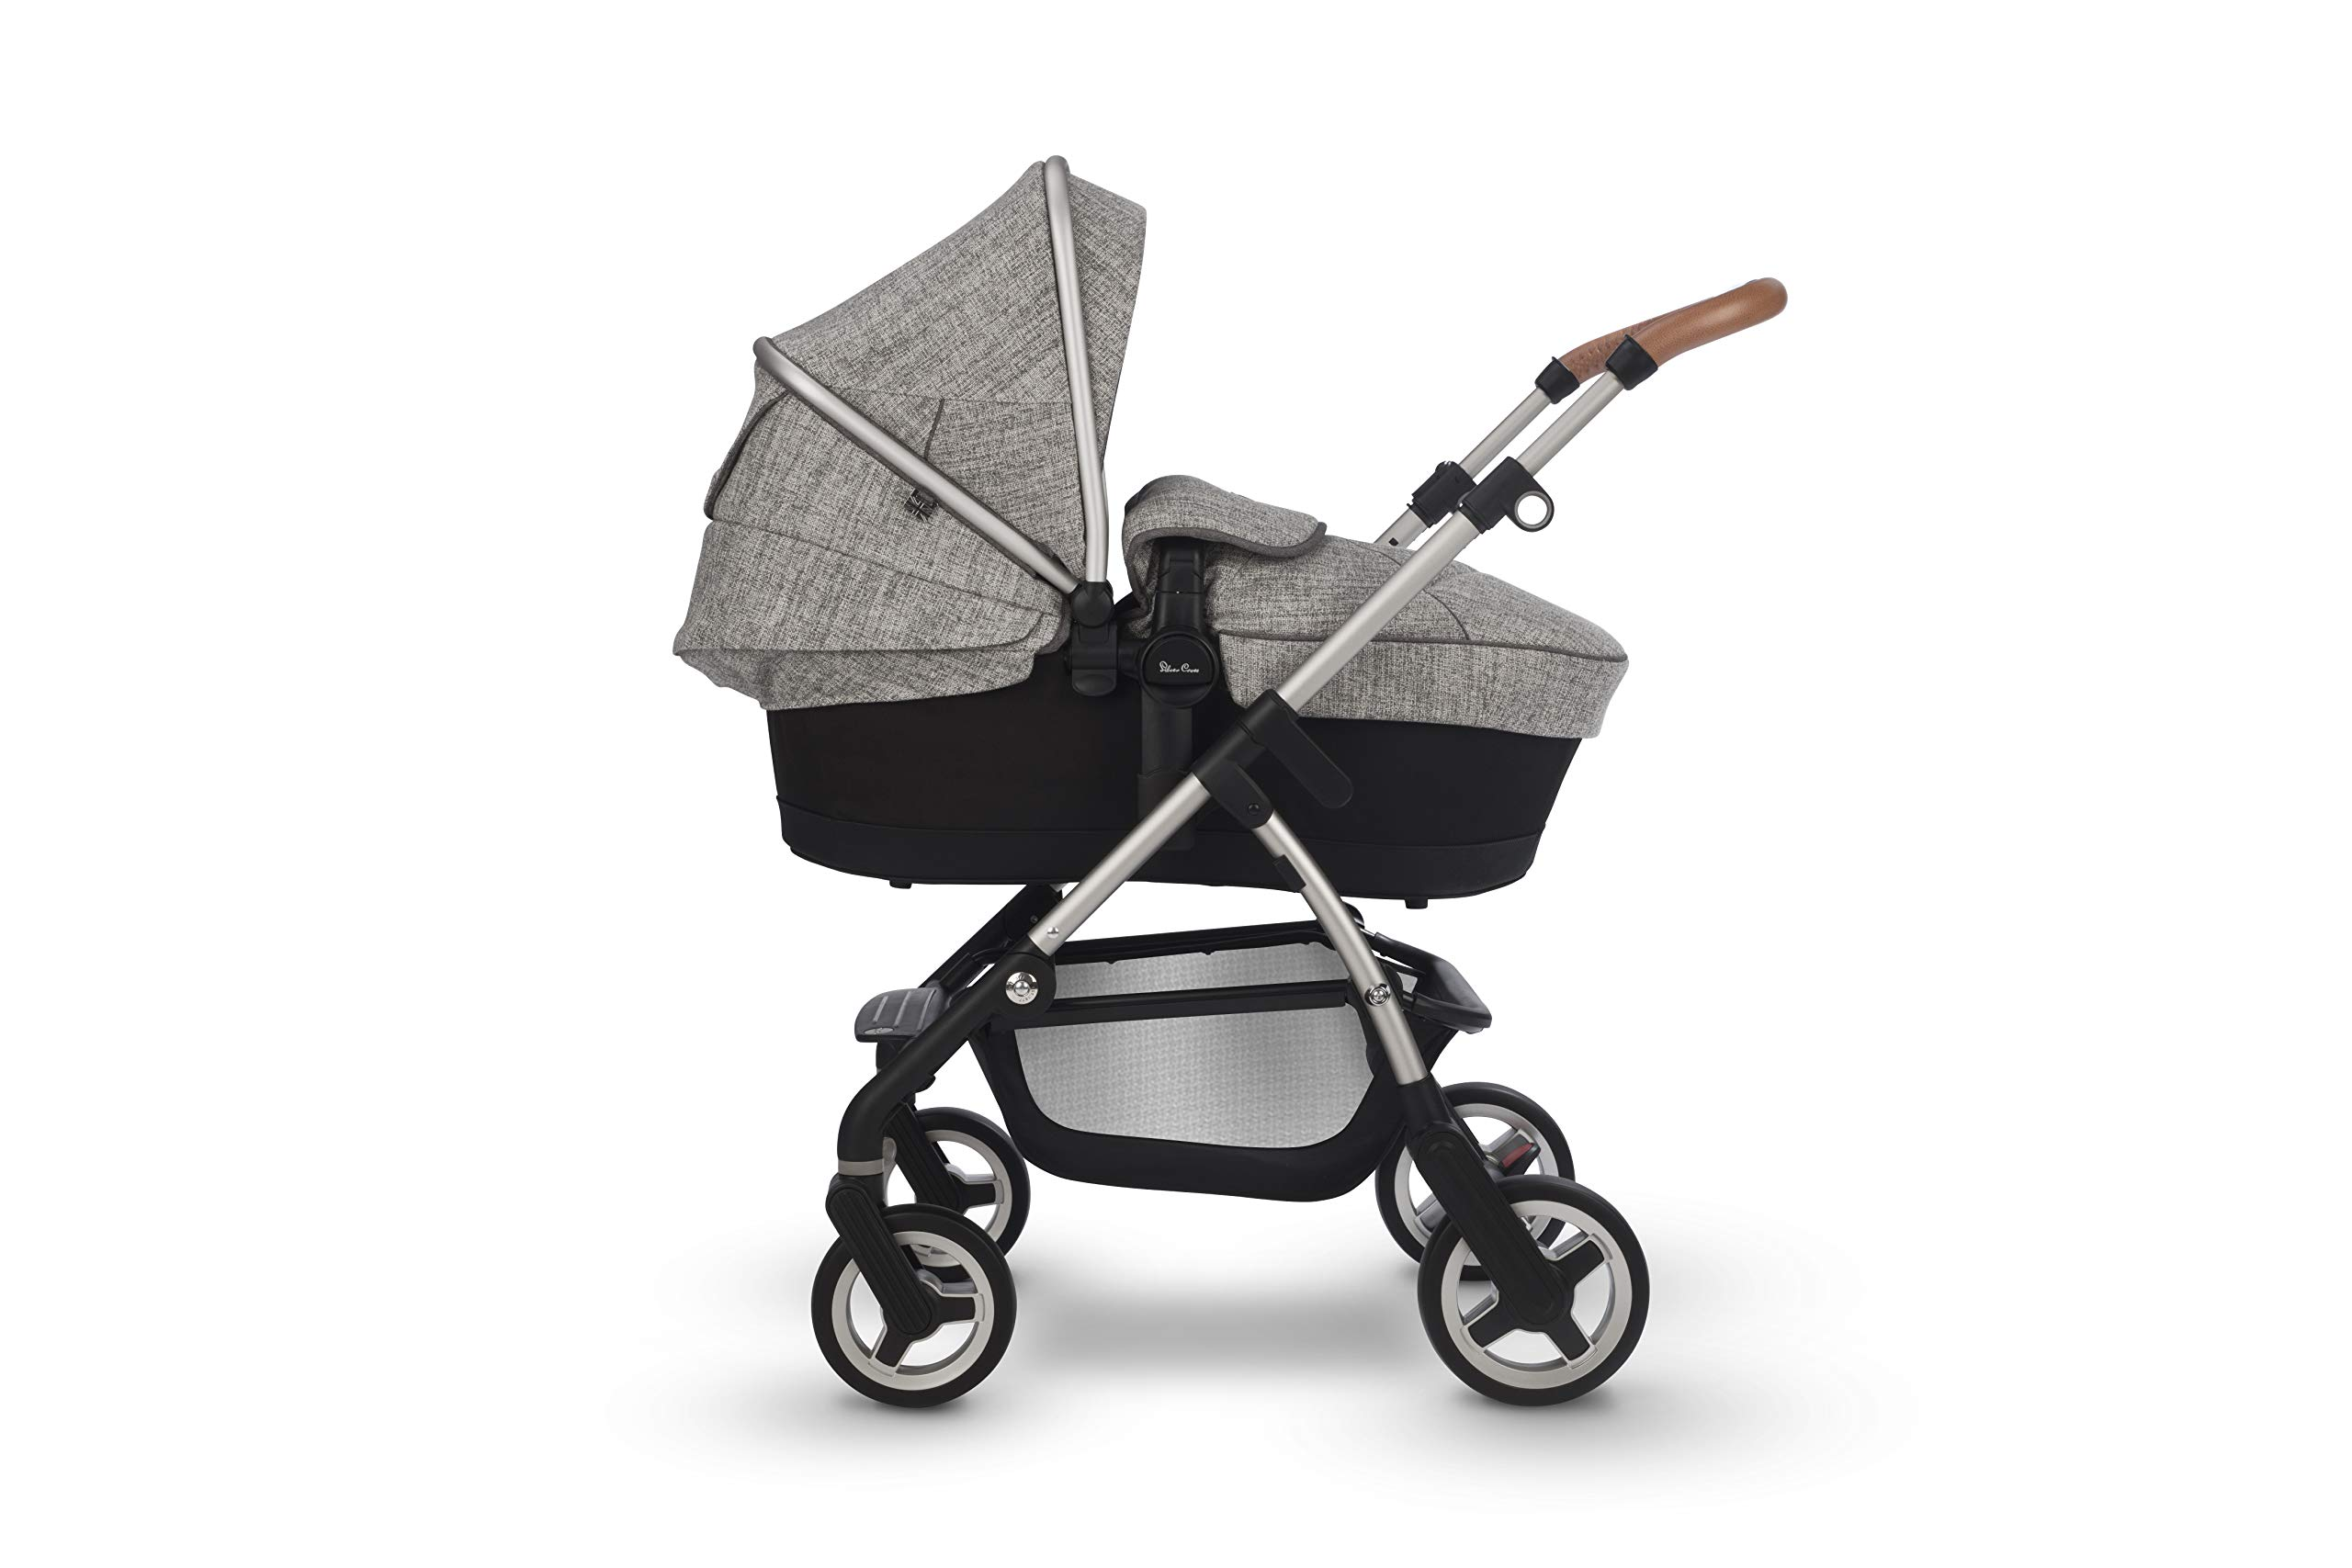 Silver Cross Wayfarer Camden Silver Cross Complete pram system that includes everything you need from birth to toddler Includes a lie-flat carrycot for your new born that is suitable for overnight sleeping Compact, lightweight and convenient, hardwearing and durable 2